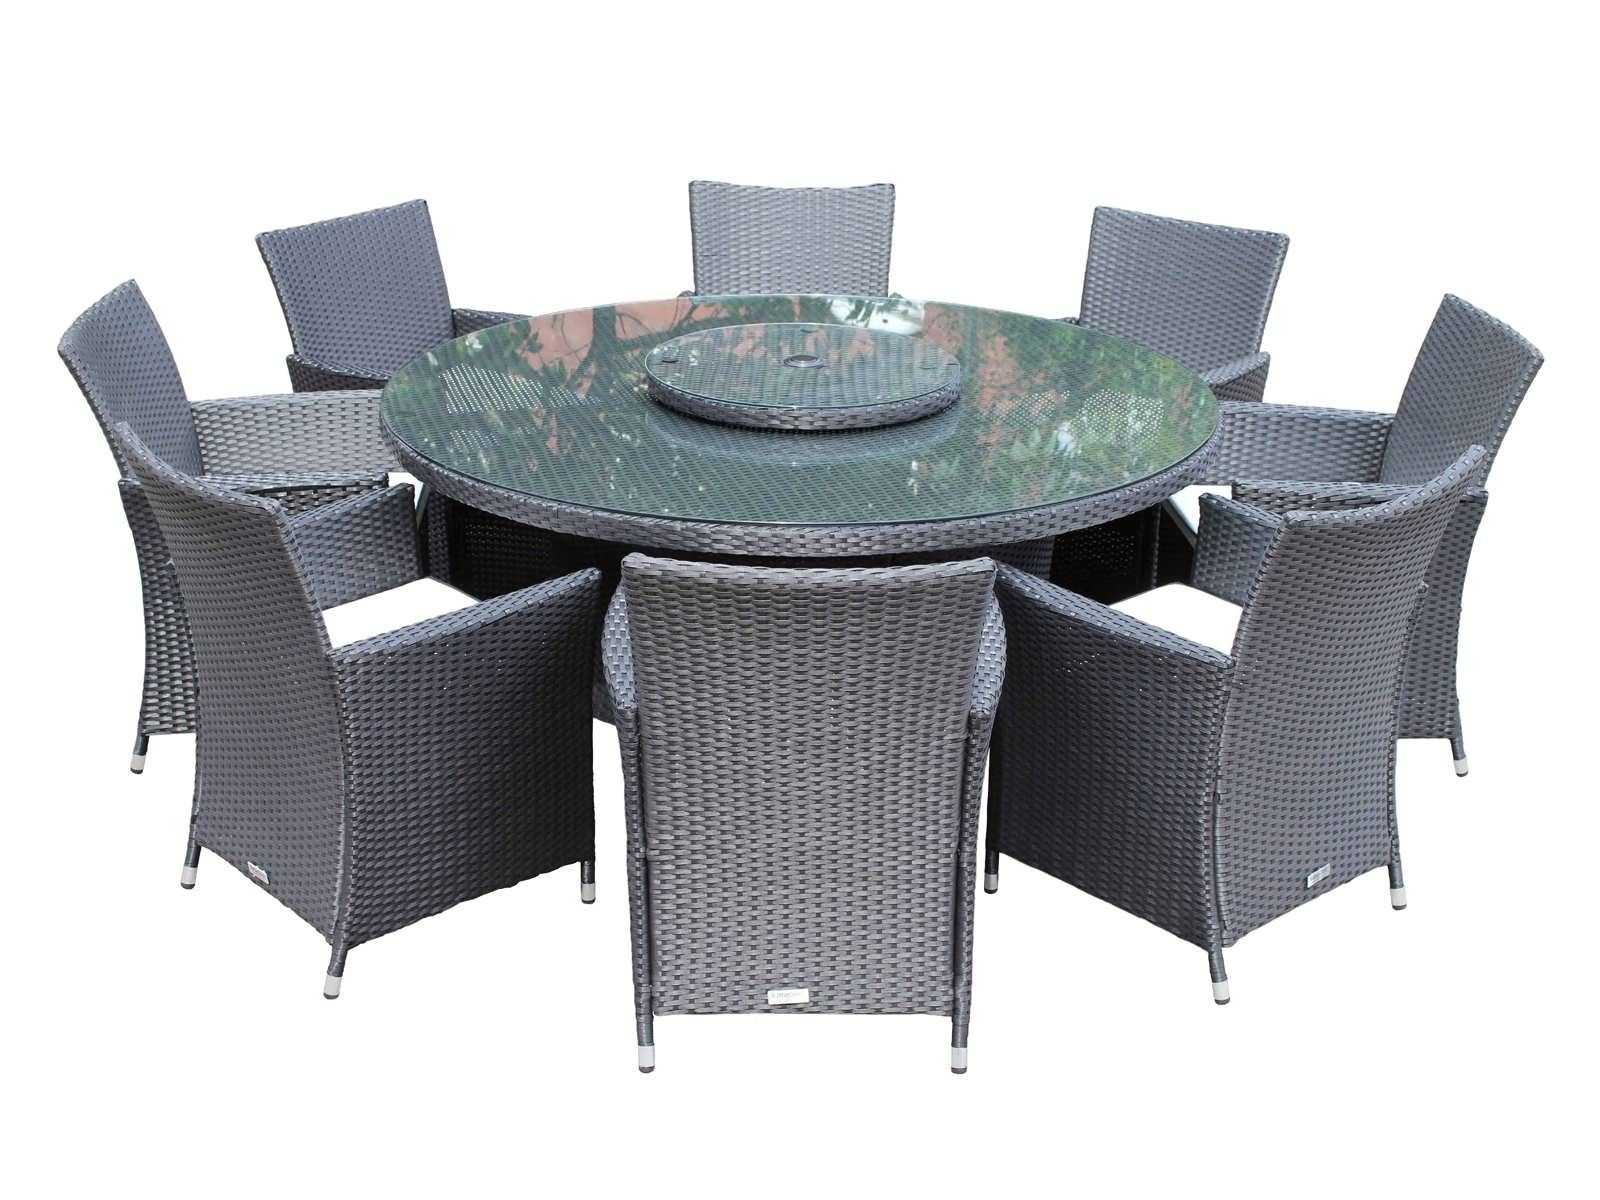 Round Dining Table For 6 With Lazy Susan 8 cambridge chairs with large round table dining set with free